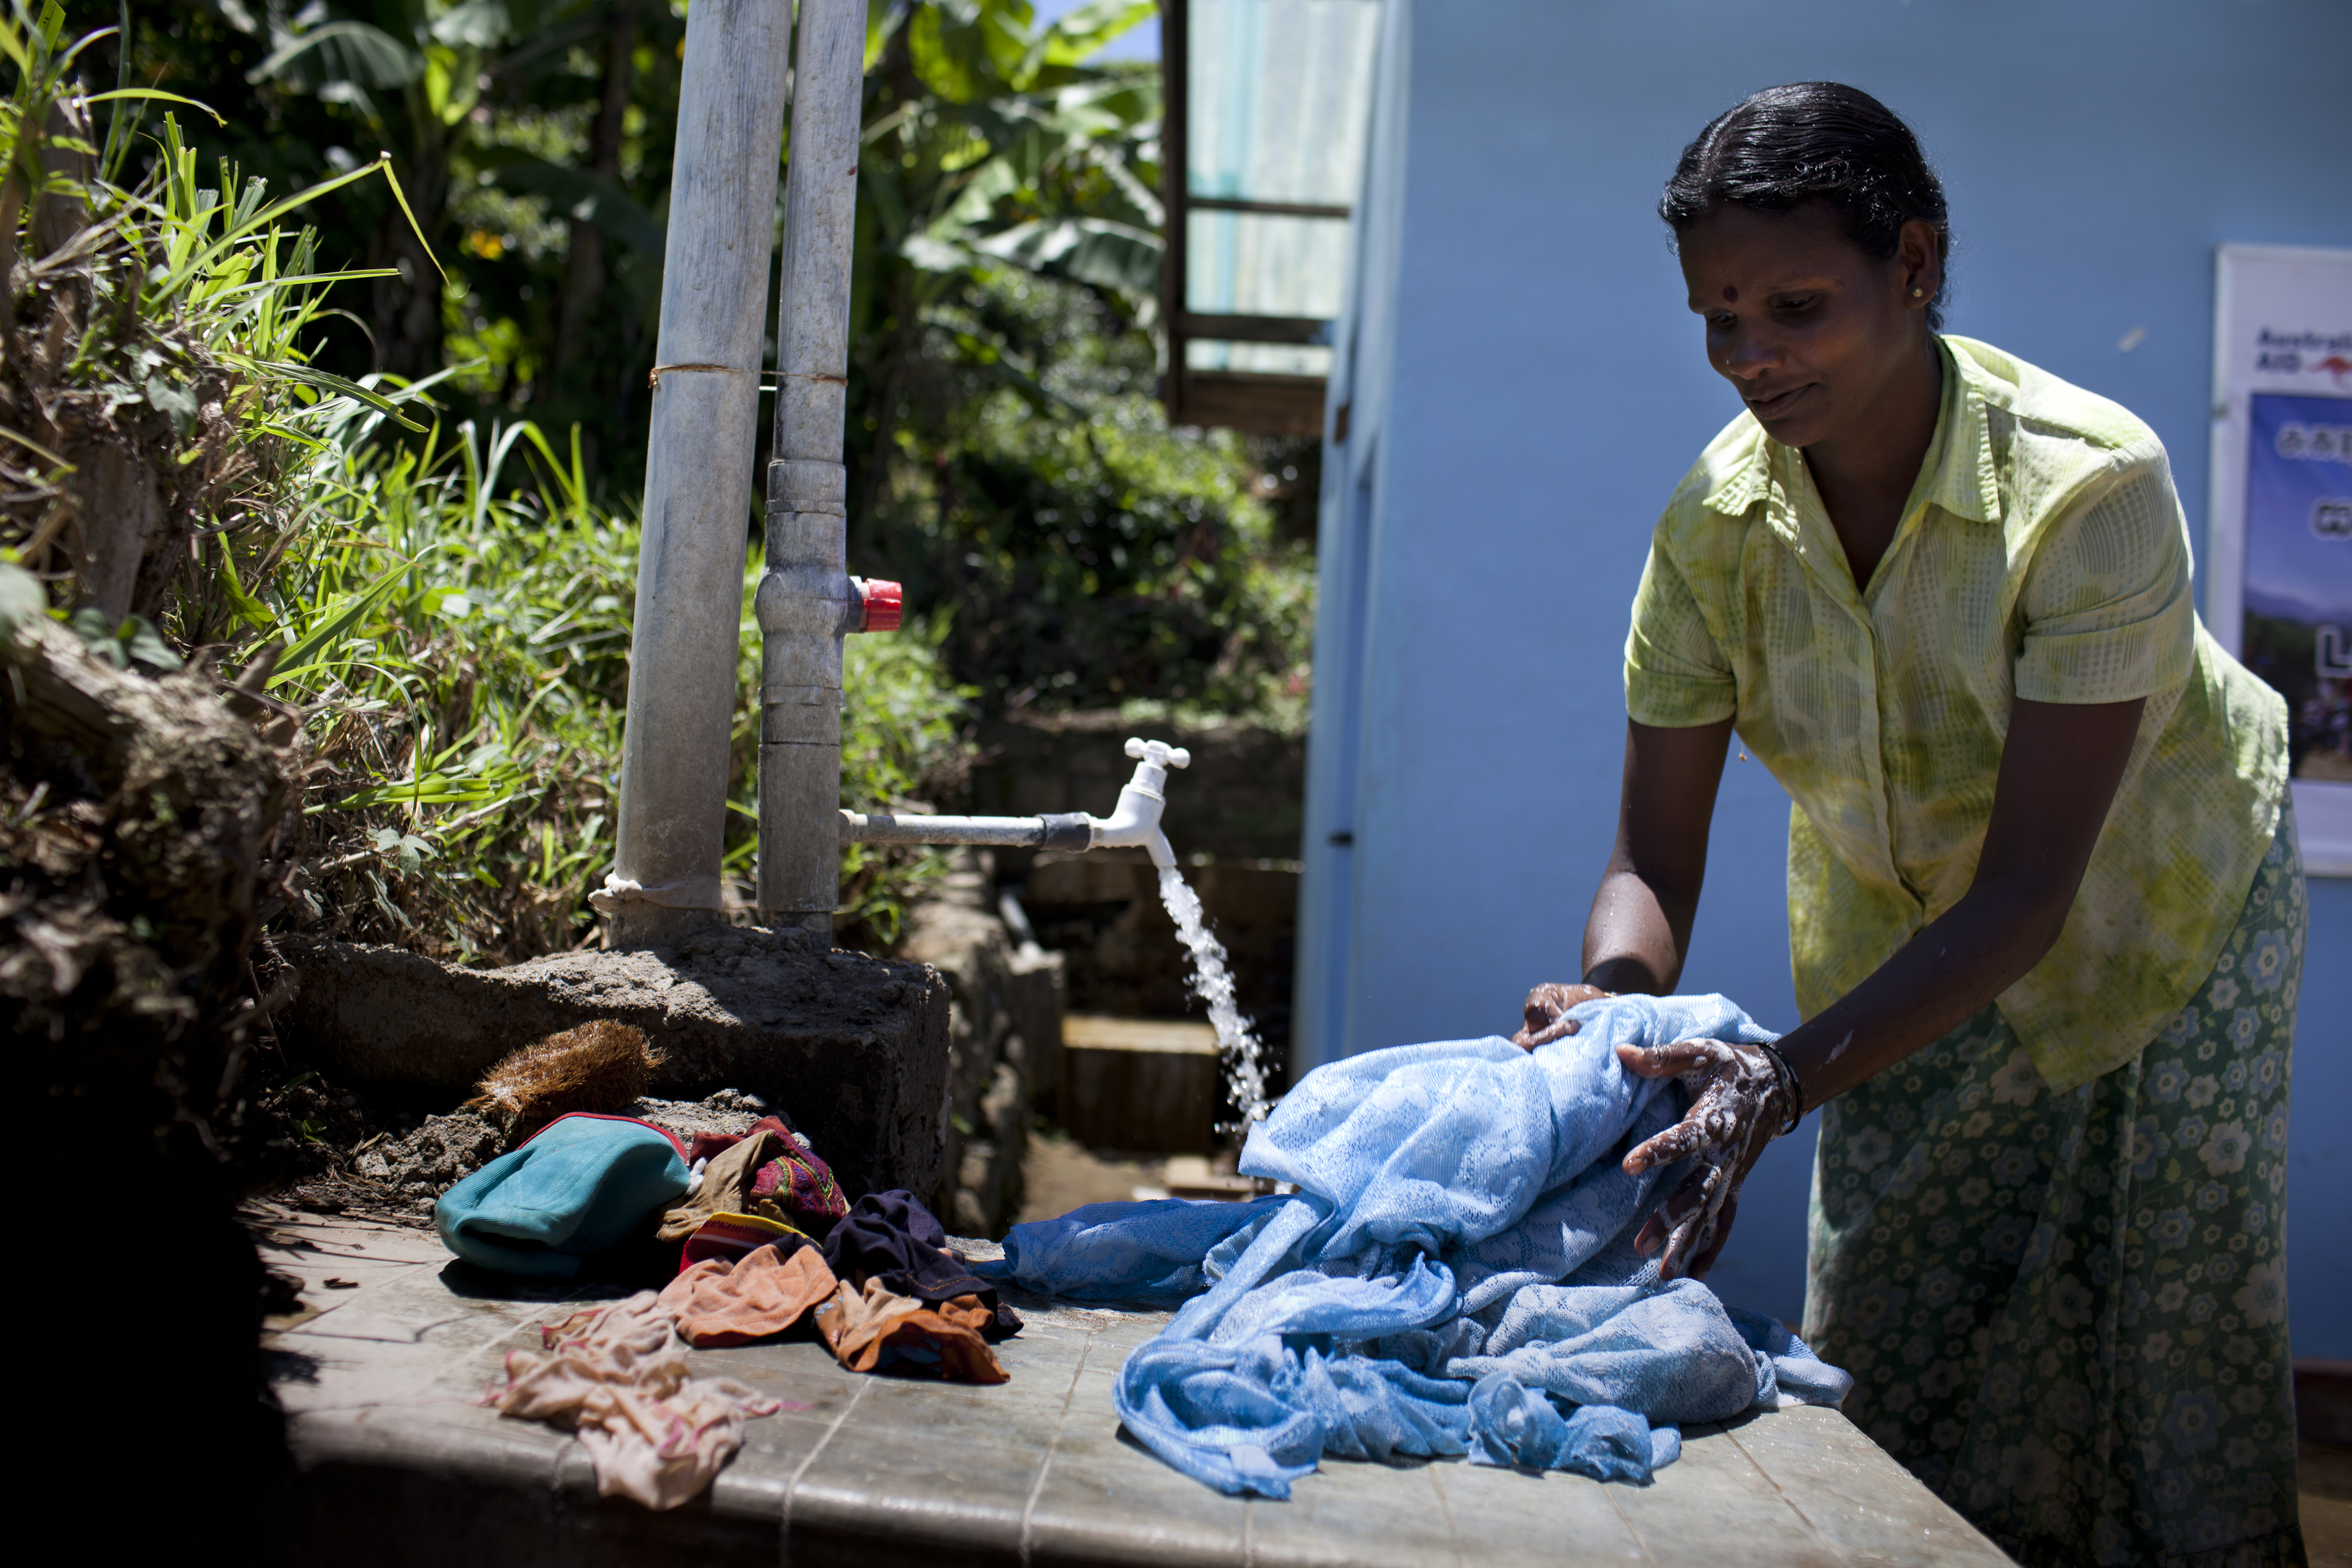 A woman uses a new village tap to wash clothes in Mactuff, Sri Lanka. Photo by Conor Ashleigh for DFAT